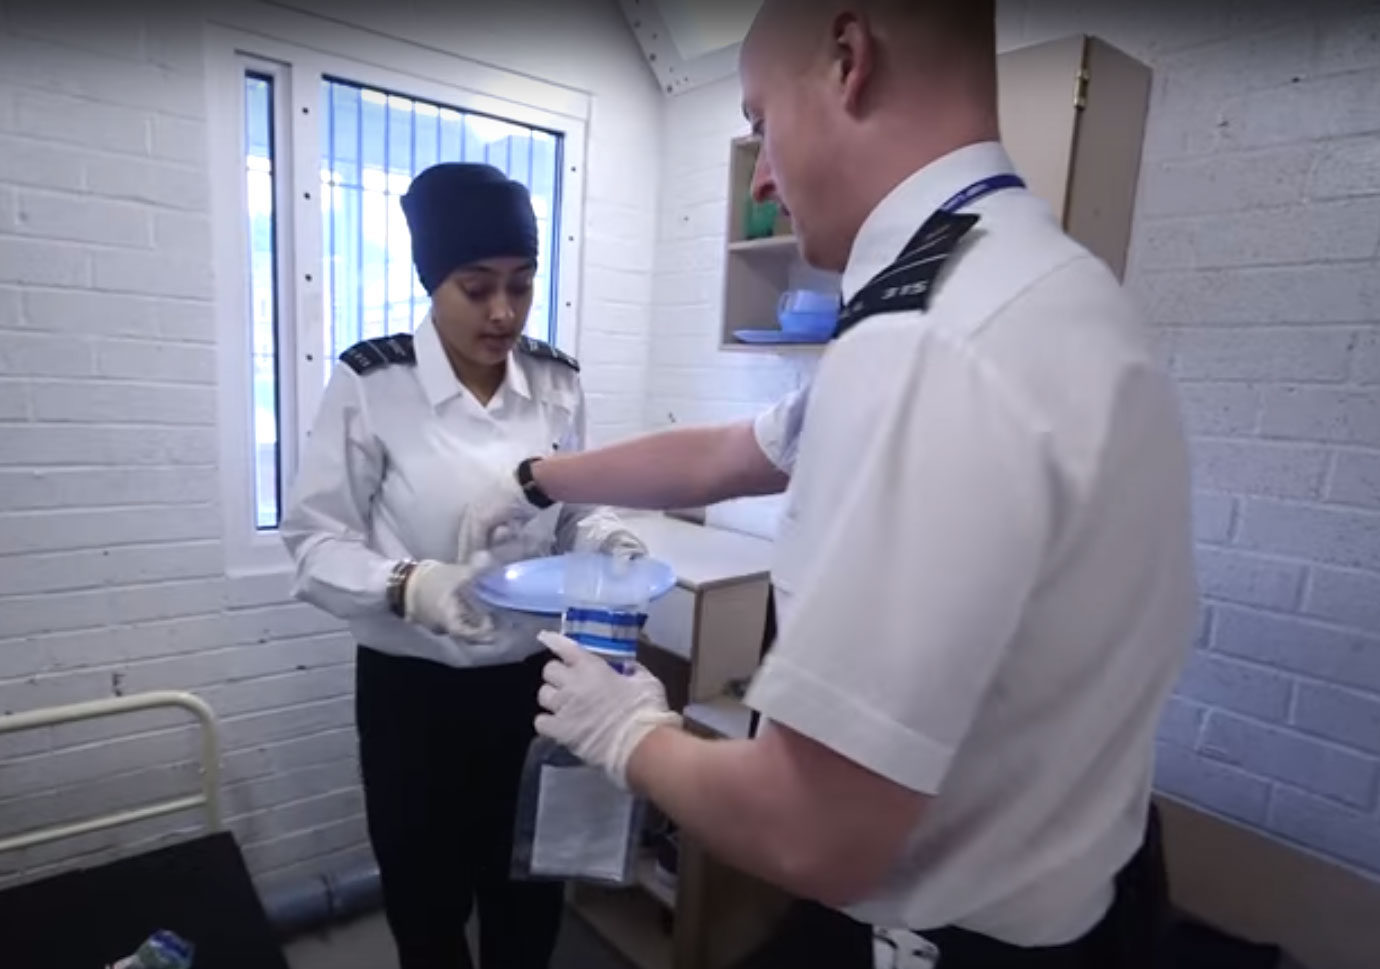 Sector Image (Her Majesty's Prison and Probation Service: Cell checks)